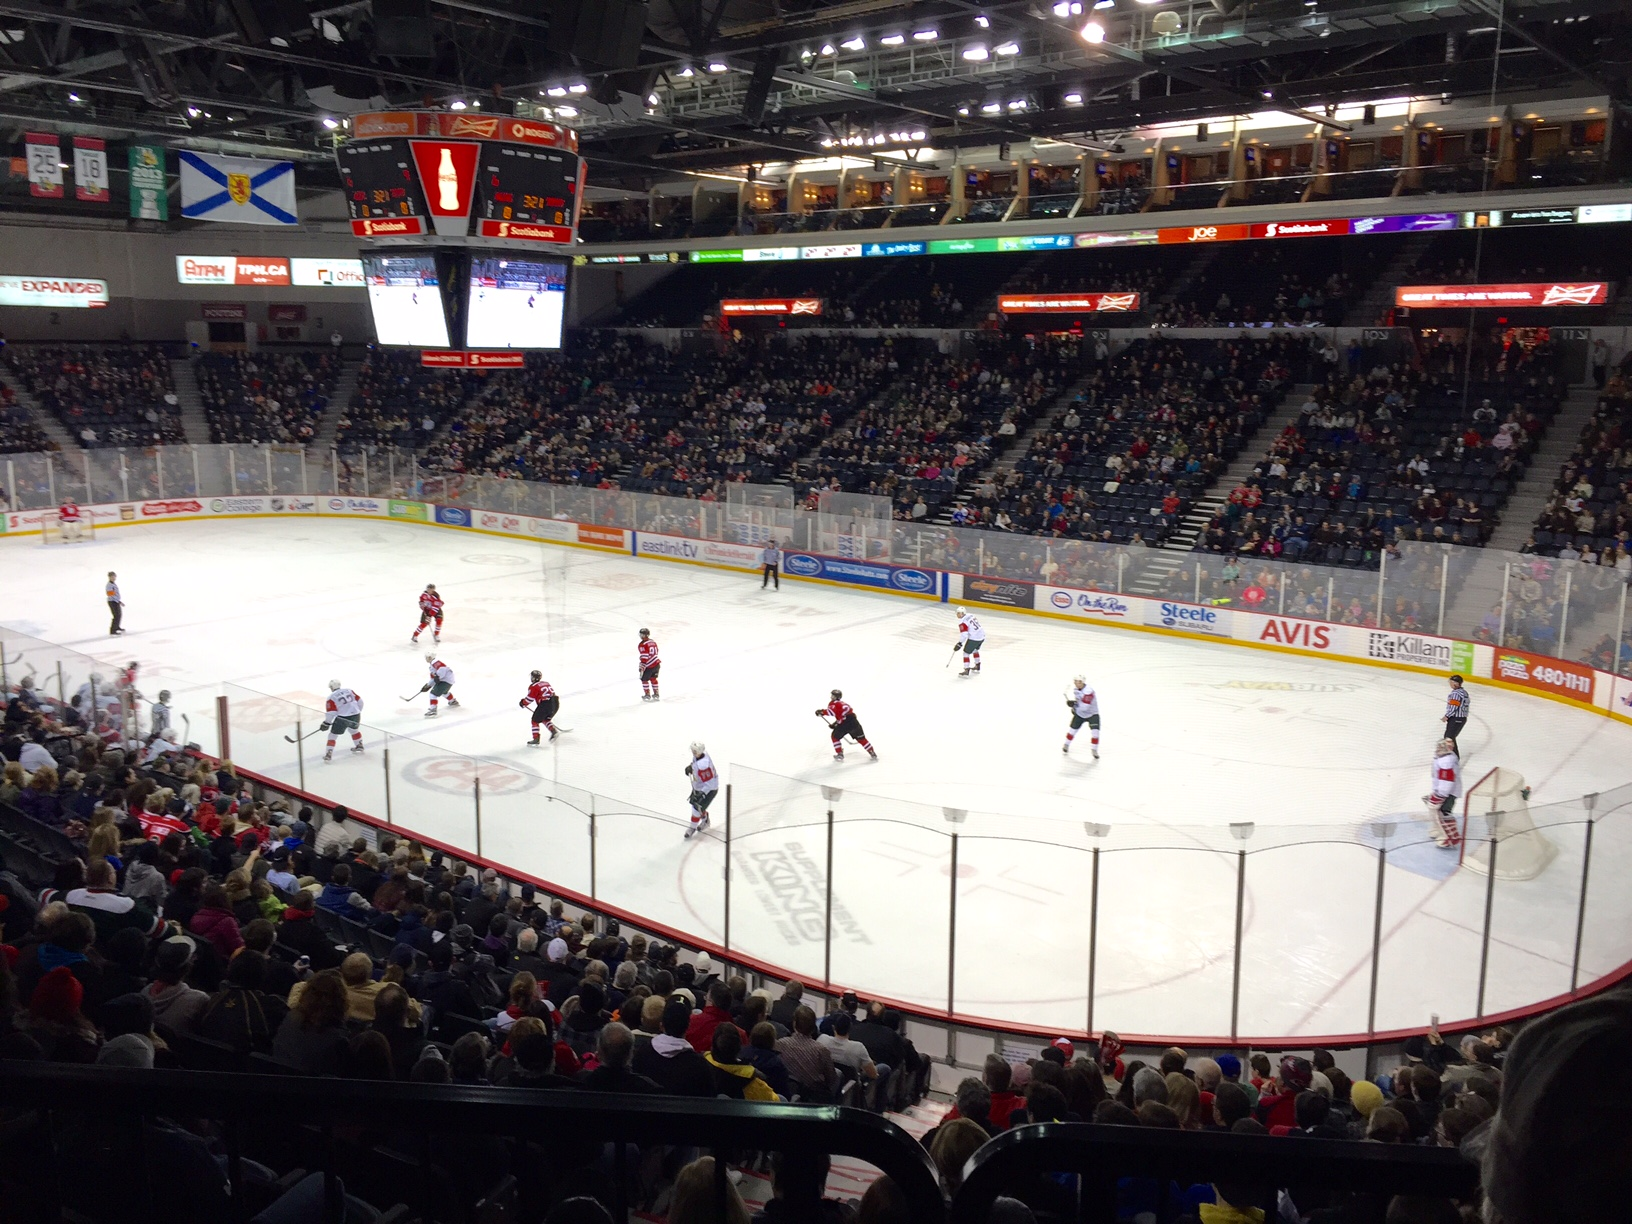 Scotiabank: Scotiabank Centre – Halifax Mooseheads